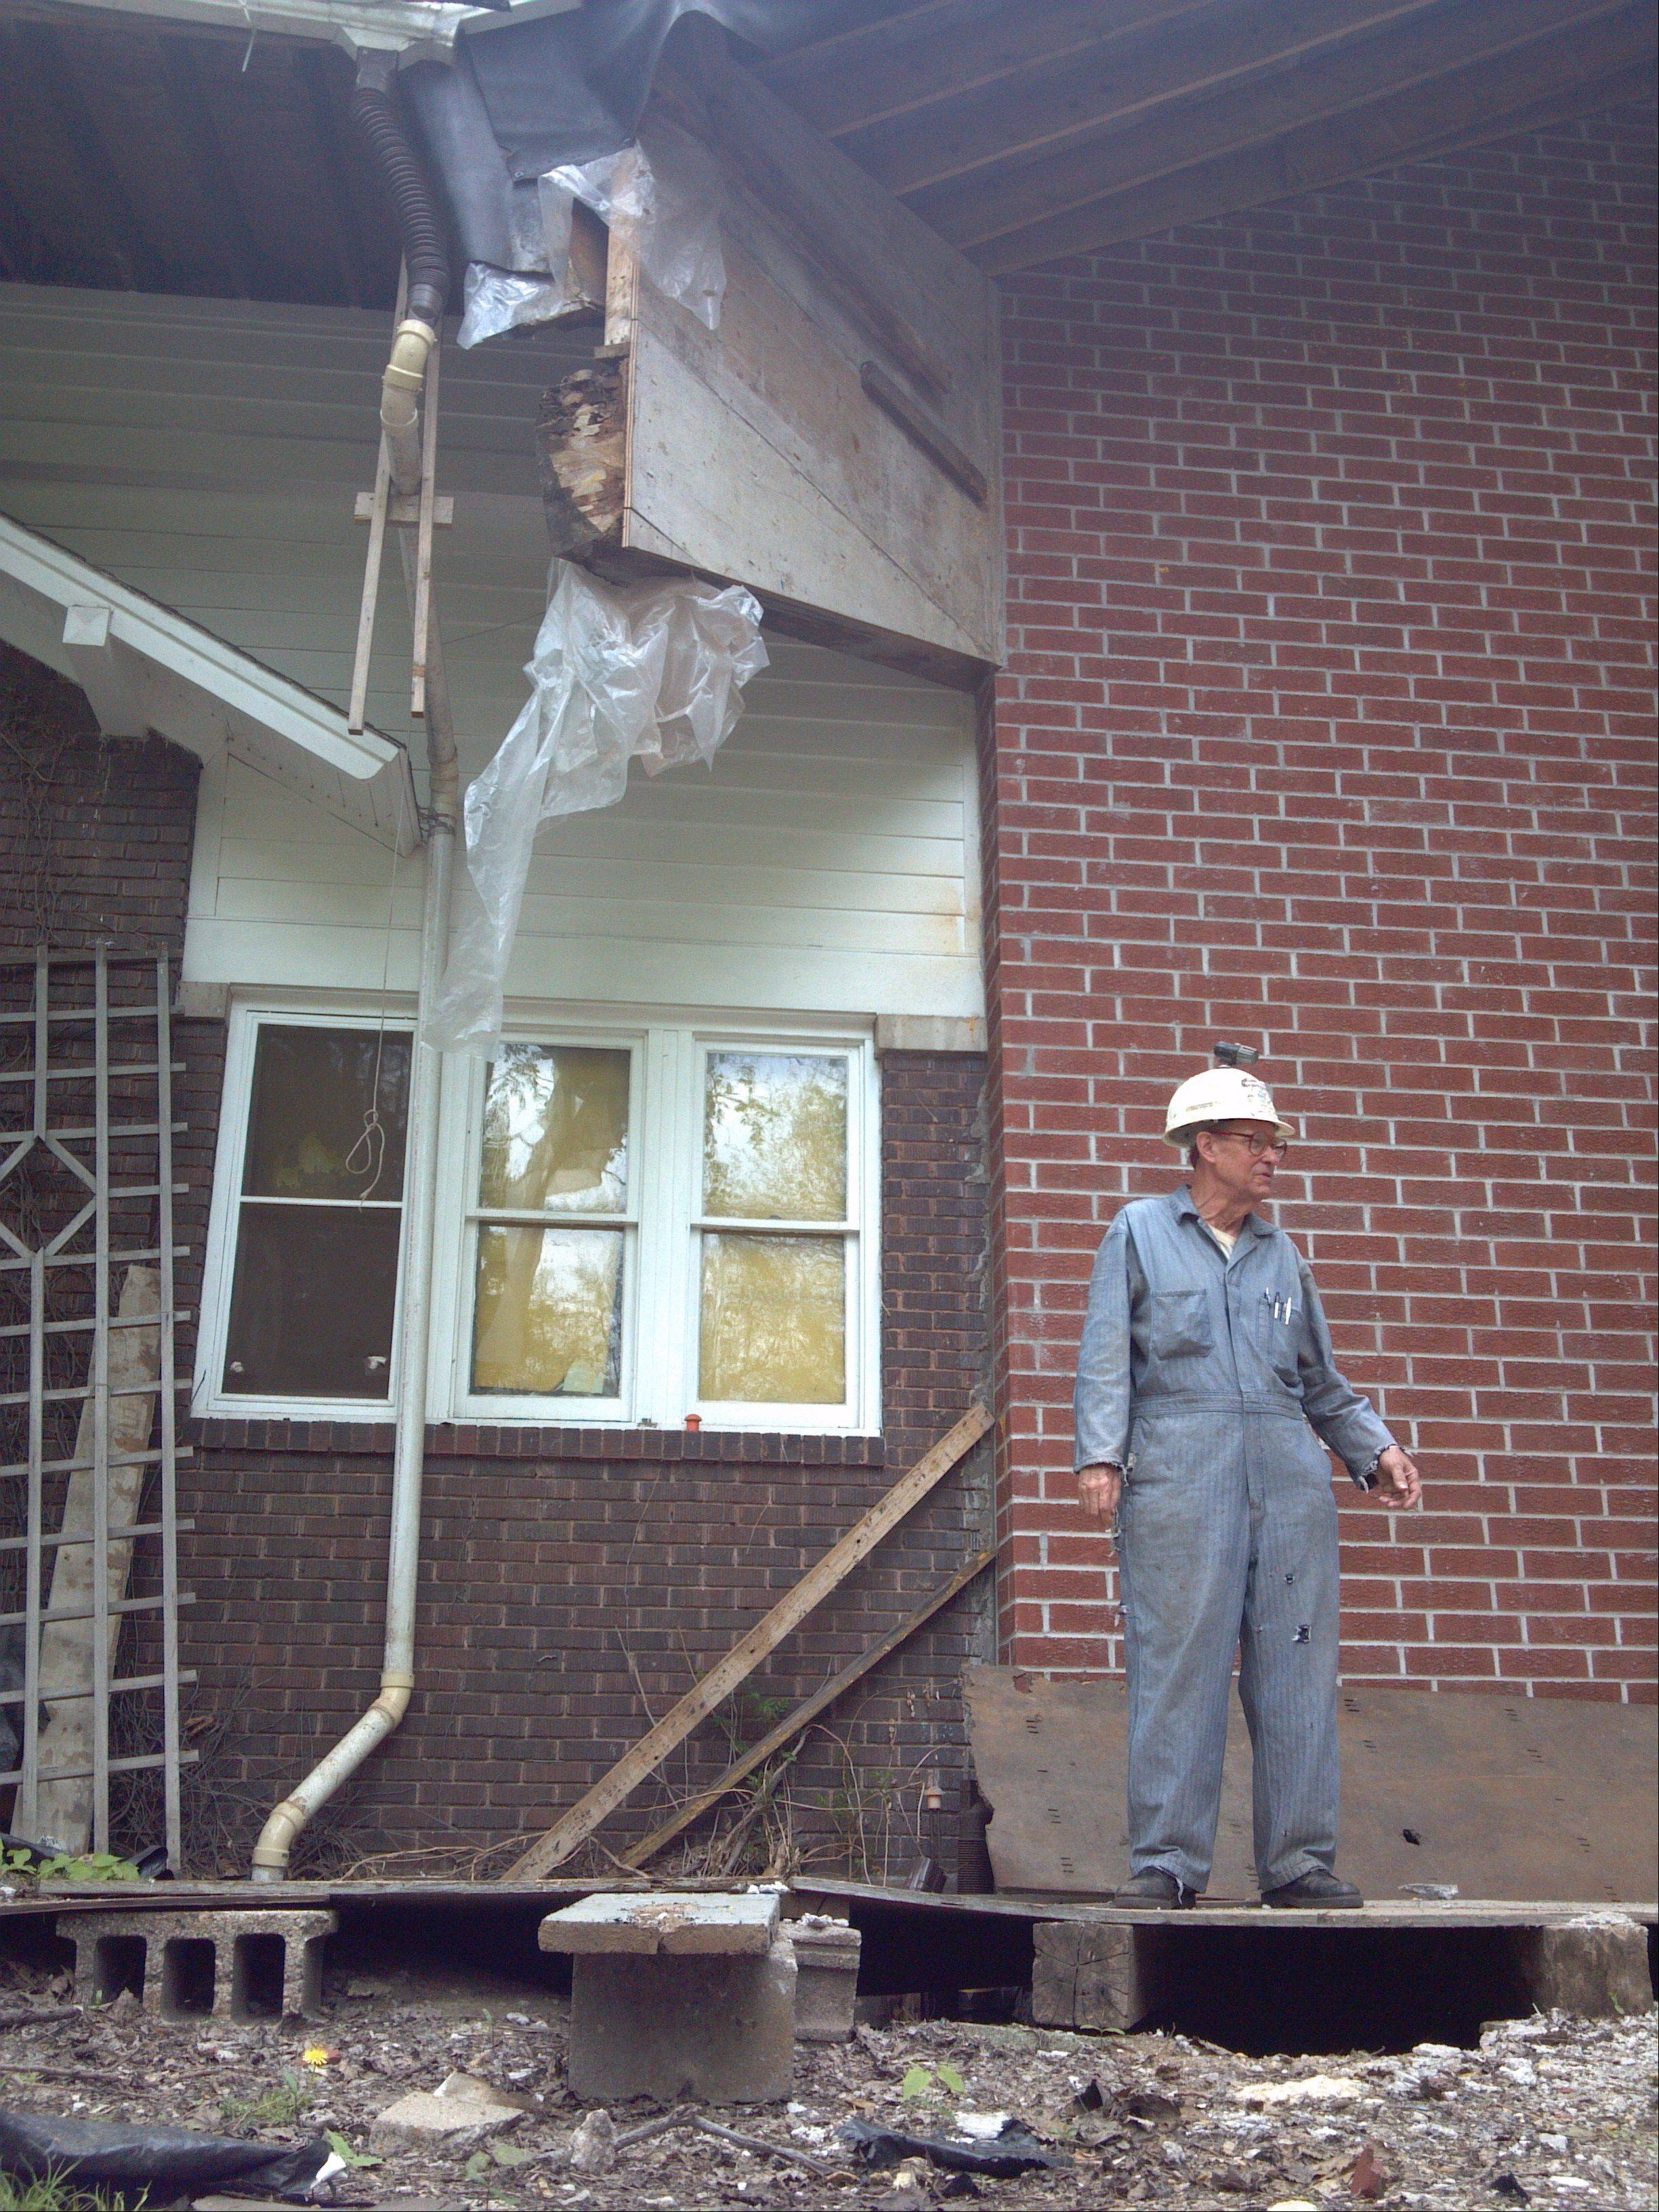 Cliff McIlvaine, who was sued by the city of St. Charles in an effort to get him to finish a project he first pulled a permit for in 1975, stands on a landing between his original home to the left and new, super-insulated addition on the right, which he hopes to turn into a museum.